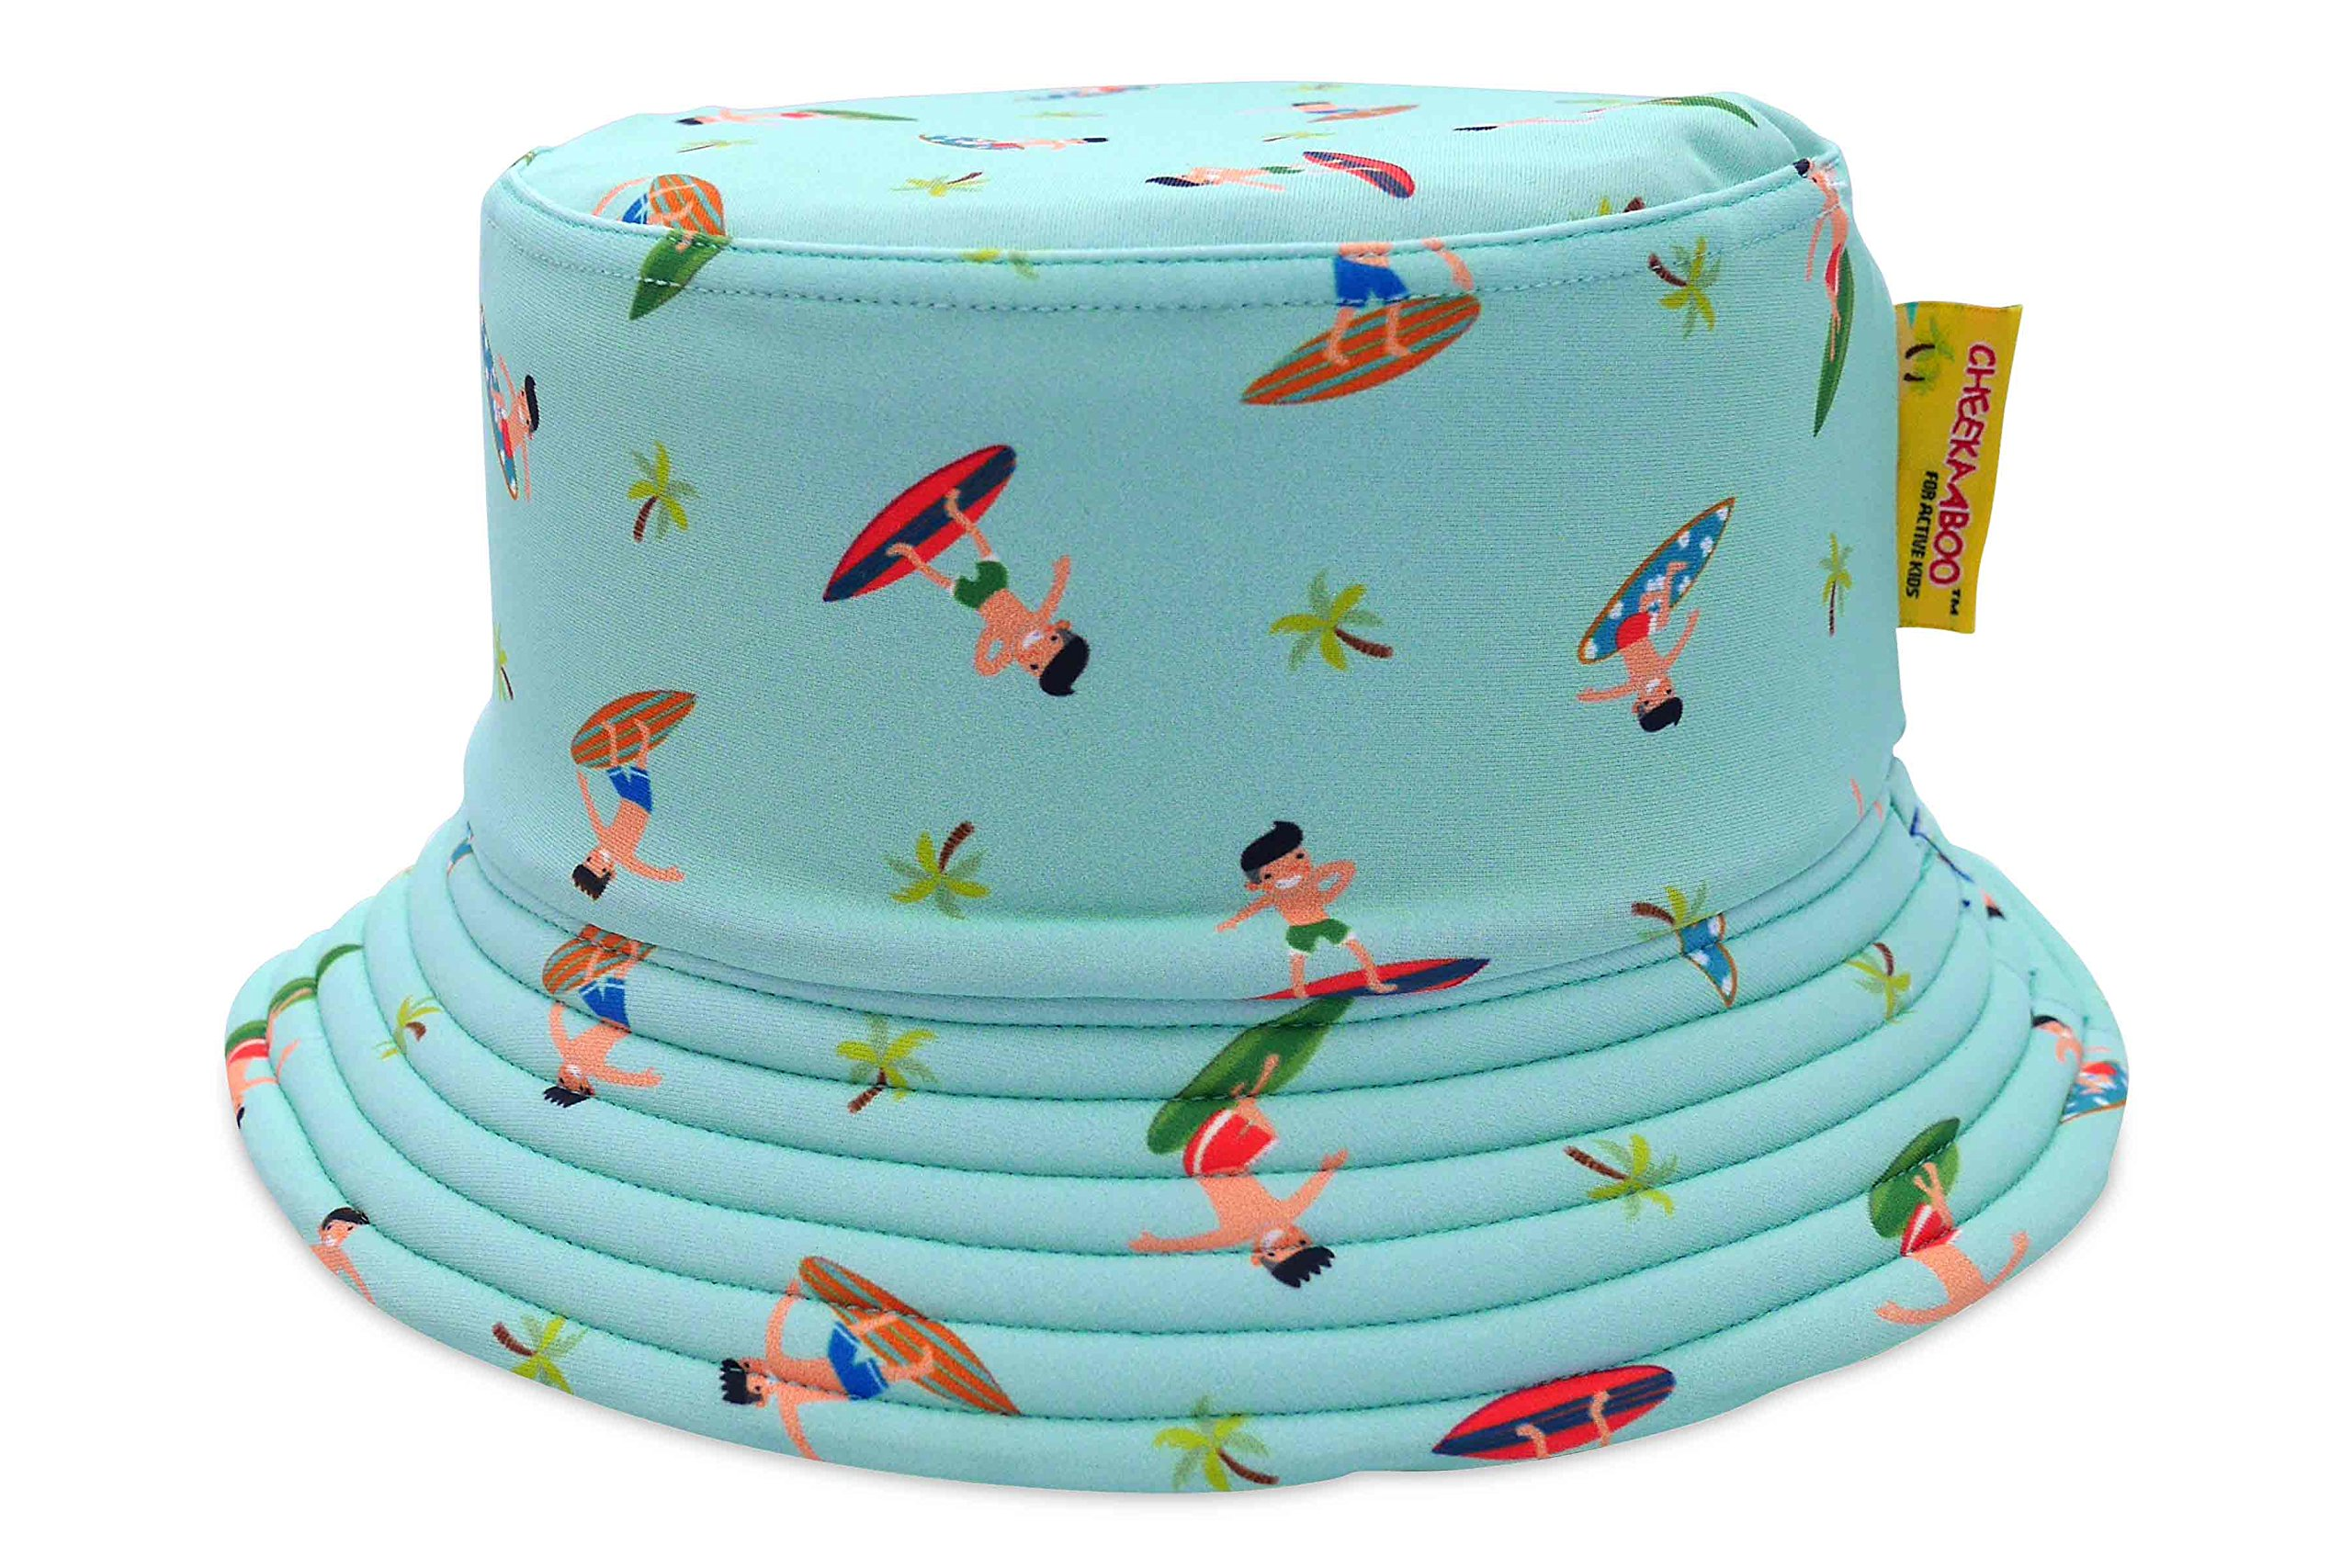 Cheekaaboo Kids & Toddler Reversible Sun Protection Hat for Boys and Girls, Age 2-8, Blue (Navy Blue/Surfers) by Cheekaaboo (Image #1)